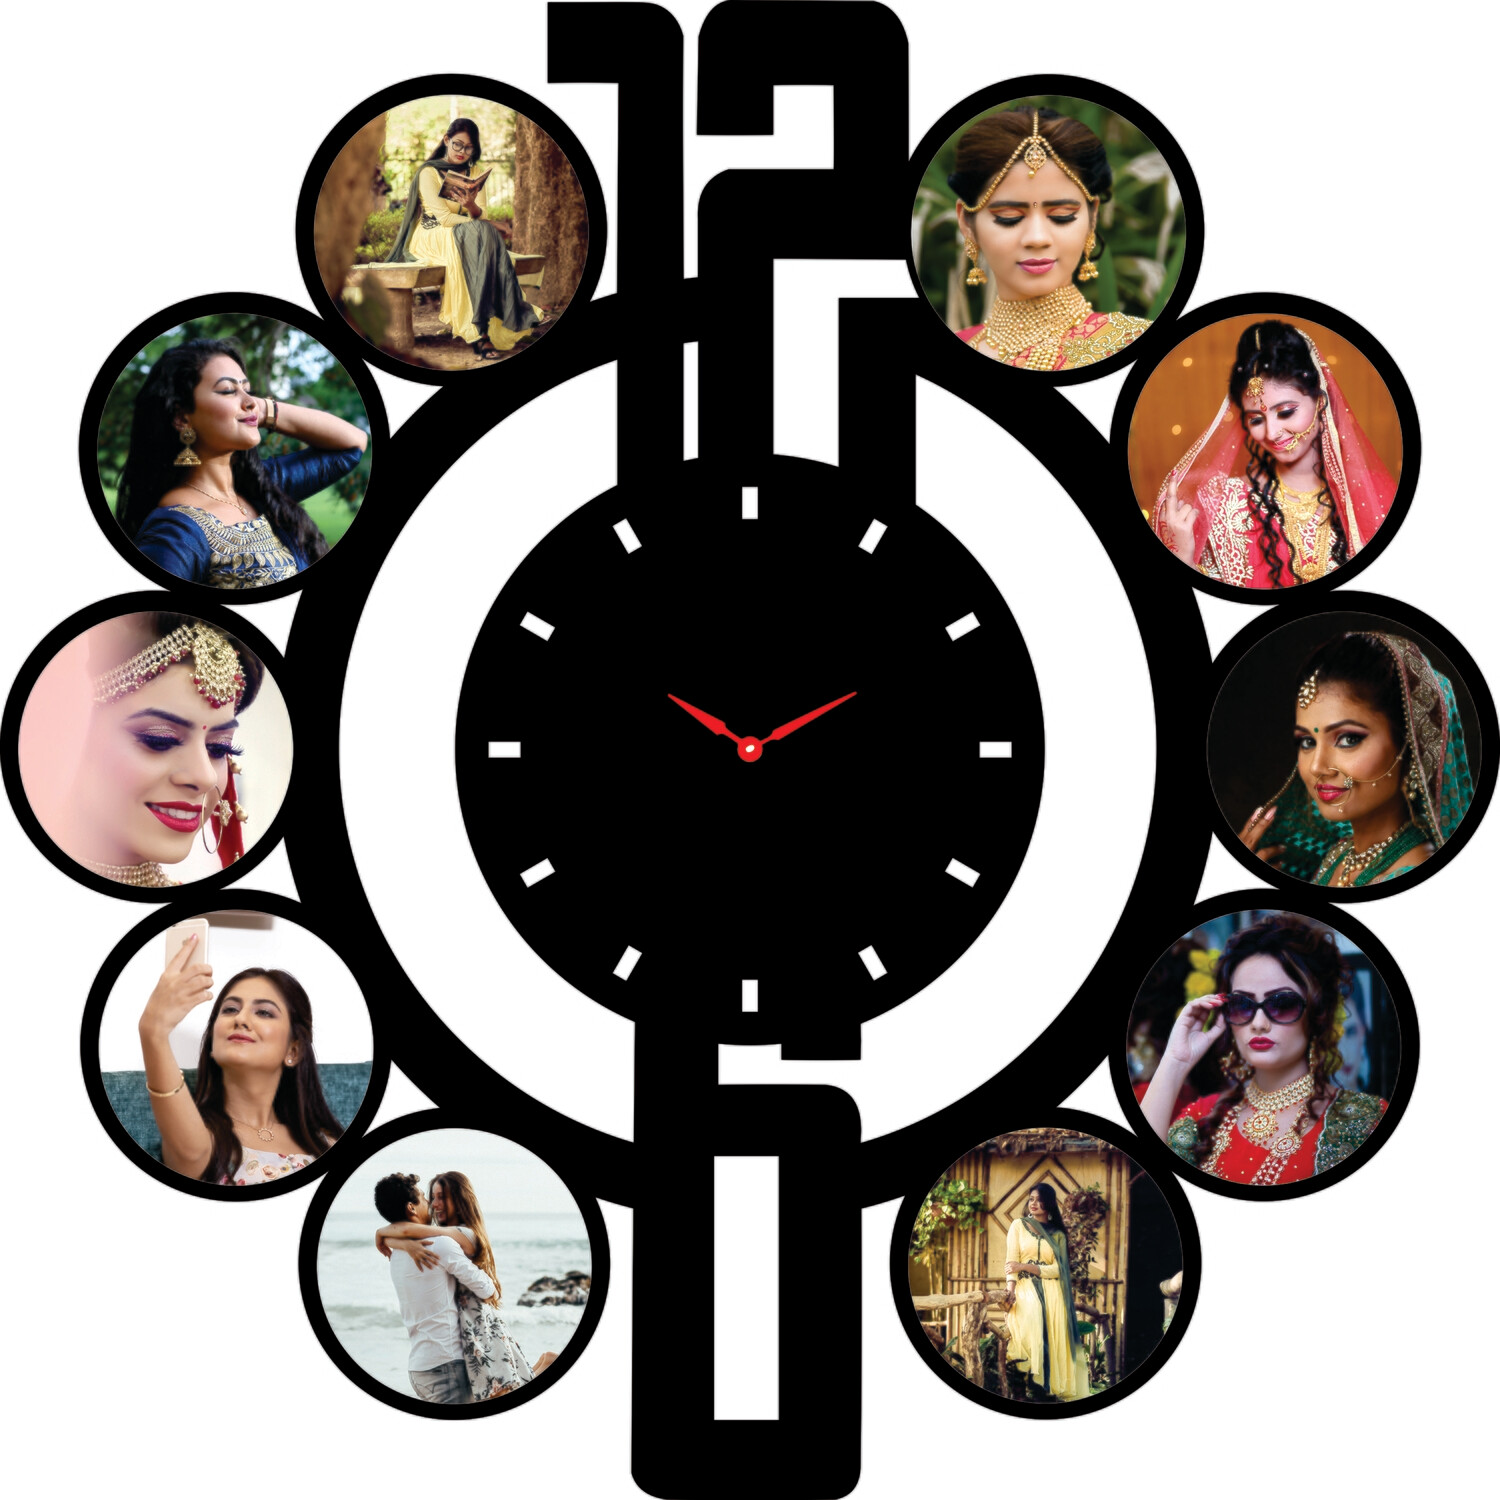 Family Photo Collage with Wall Clock